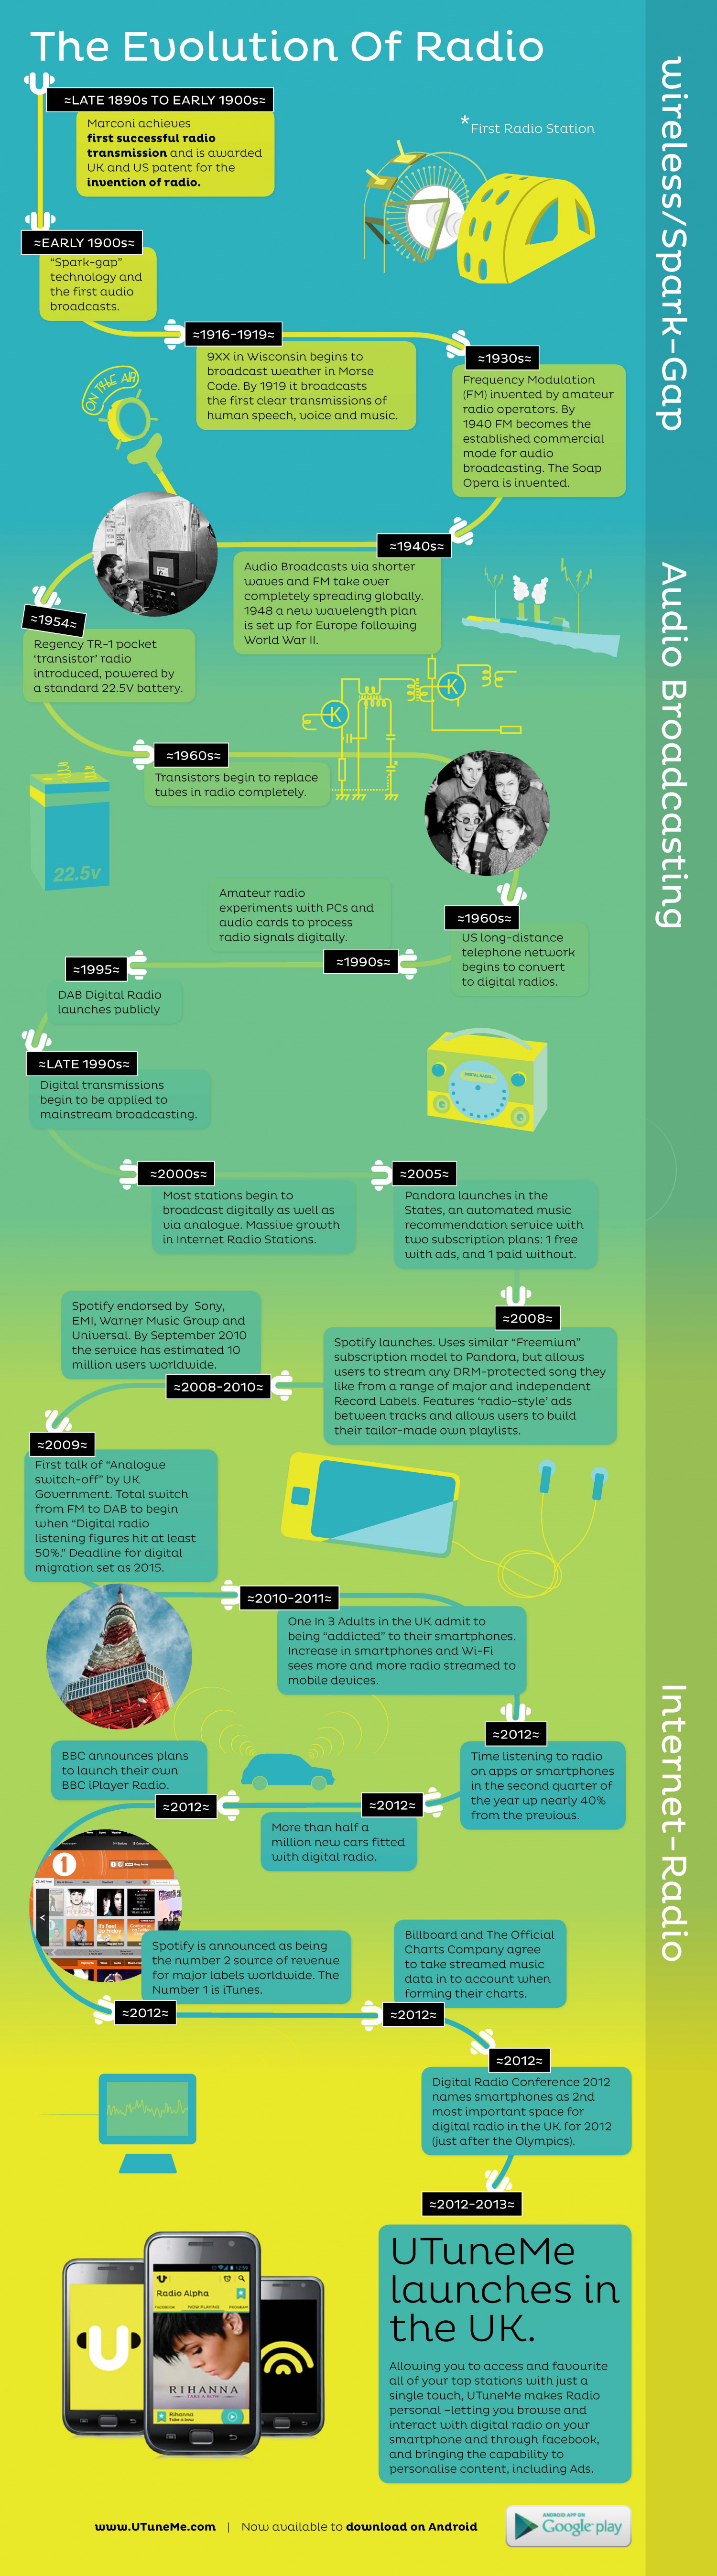 The Evolution Of Radio Infographic